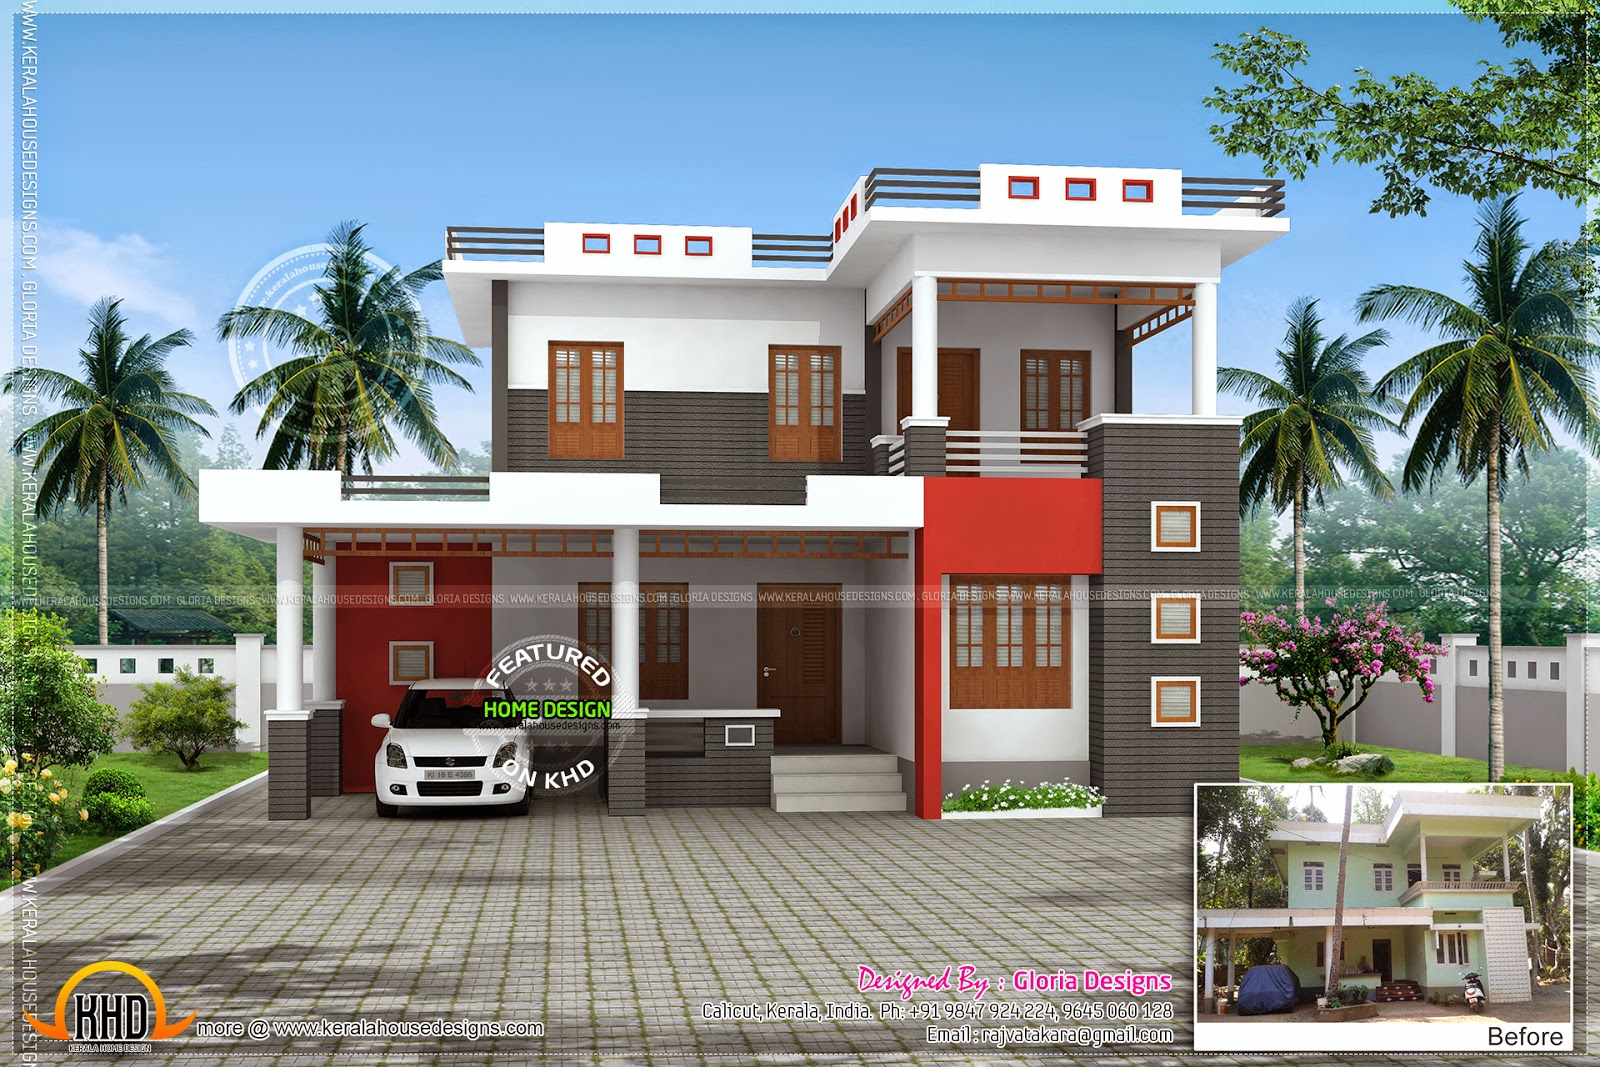 Renovation 3d model for an old house kerala home design for Kerala 3d home floor plans